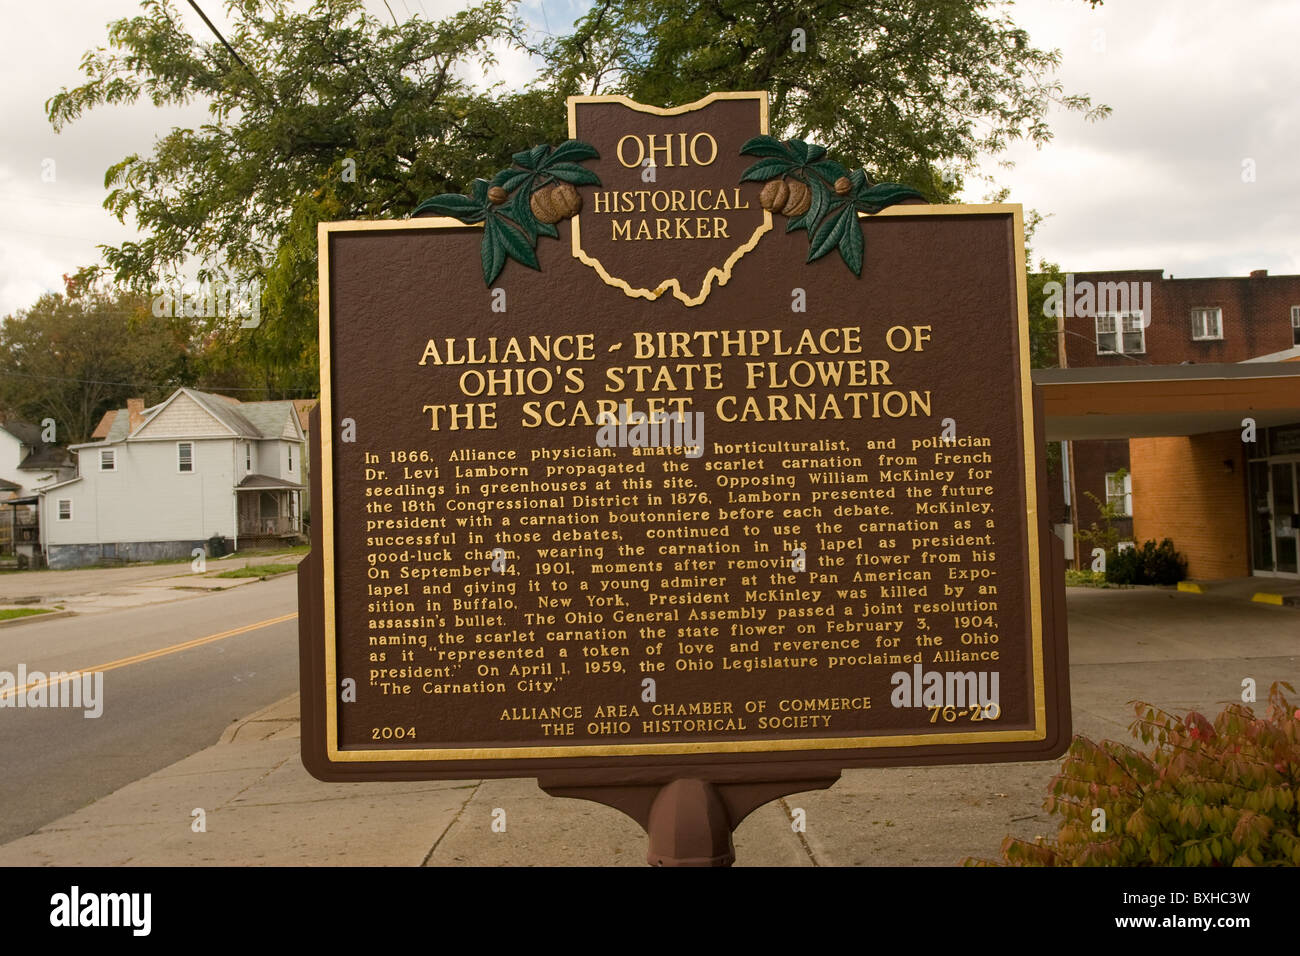 Historical Marker. Alliance Birthplace of Ohio's State Flower The Scarlet Carnation. - Stock Image